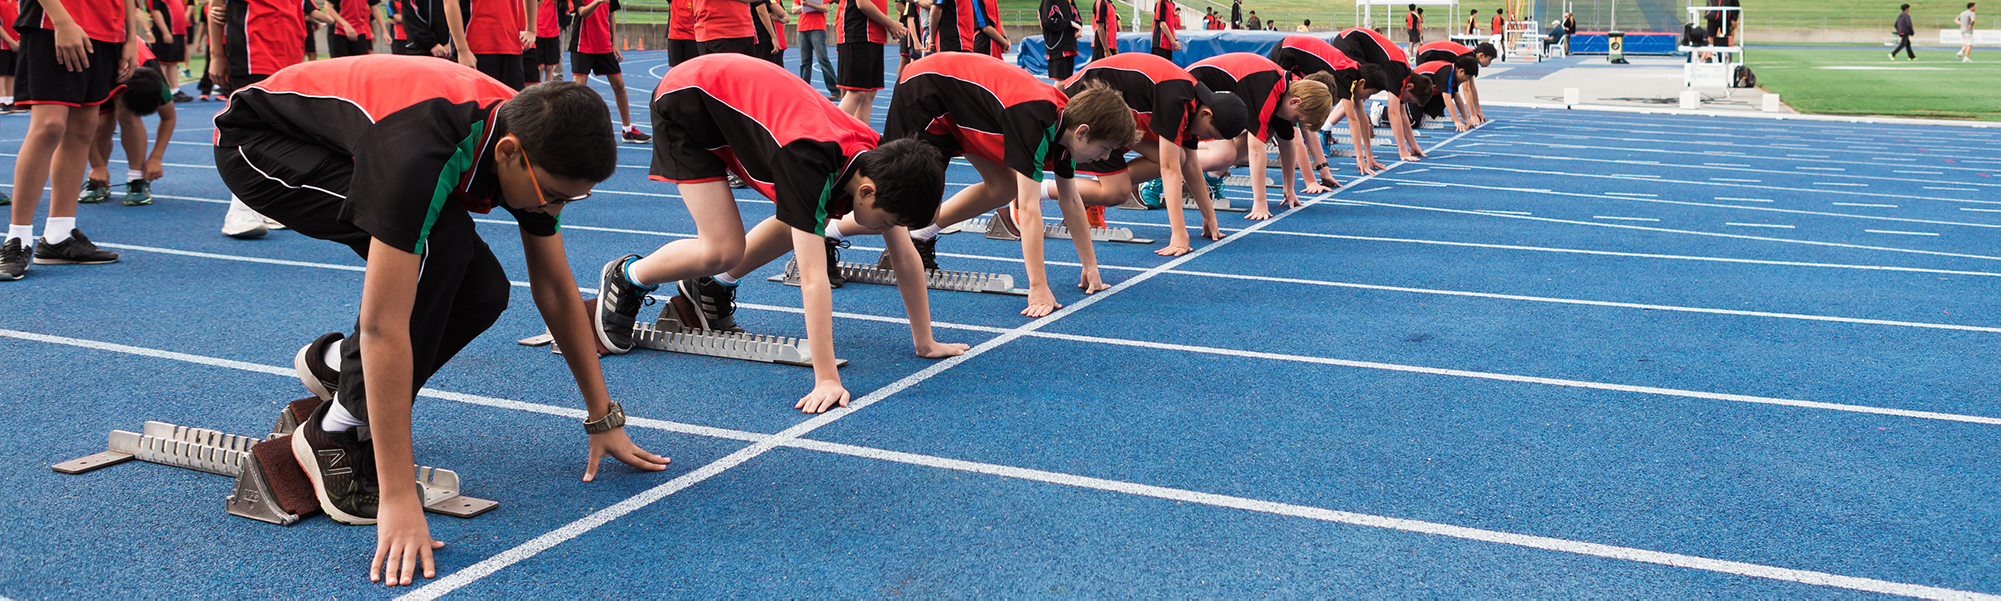 Students participating in the athletics carnival